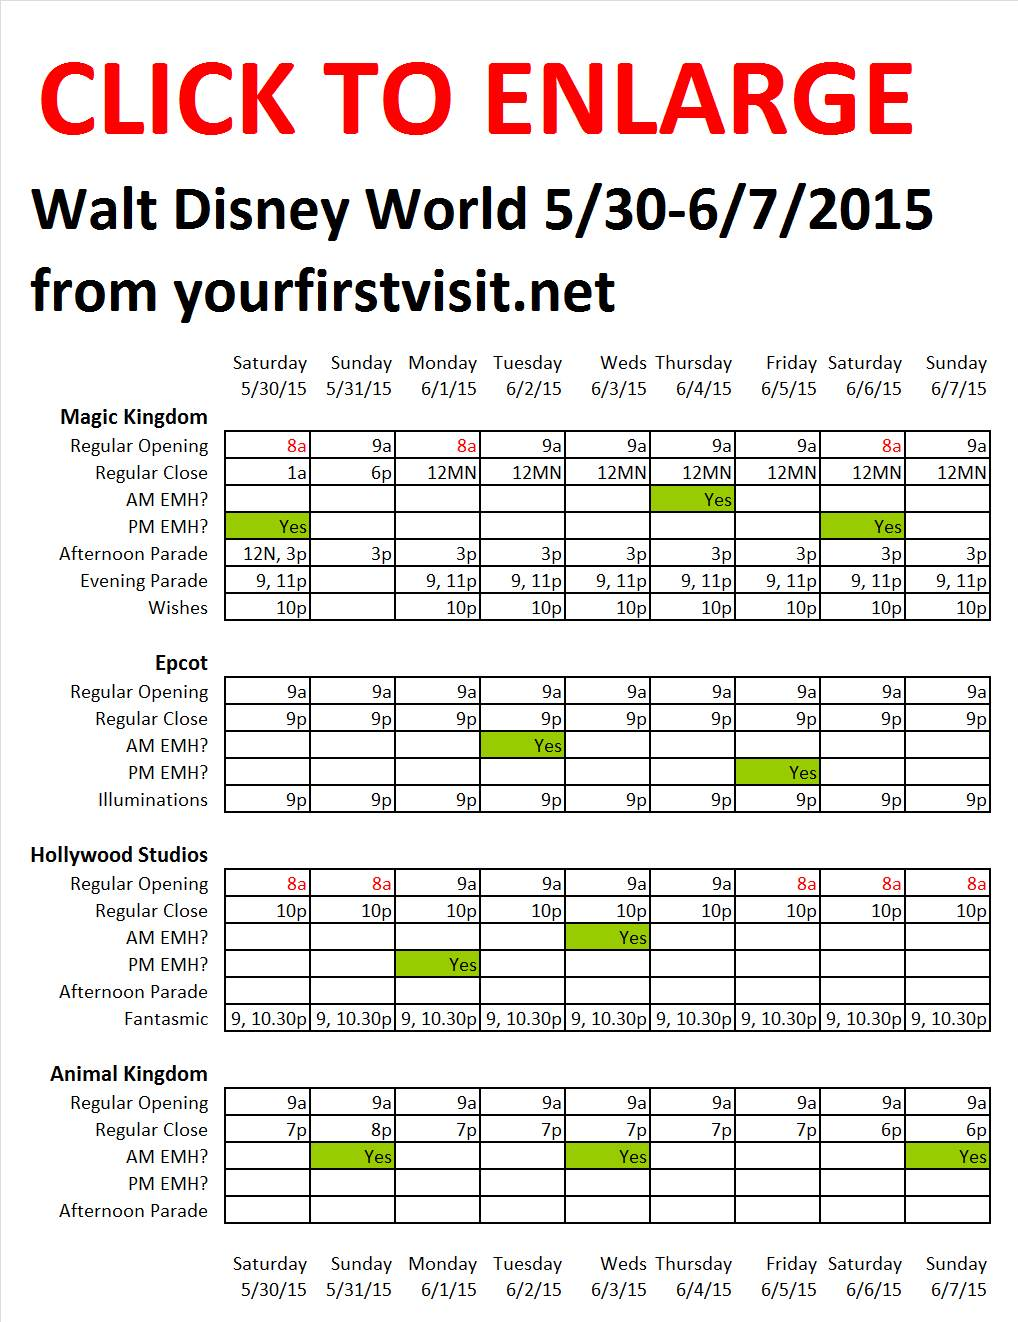 Disney World May 30 to June 7 2015 from yourfirstvisit.net